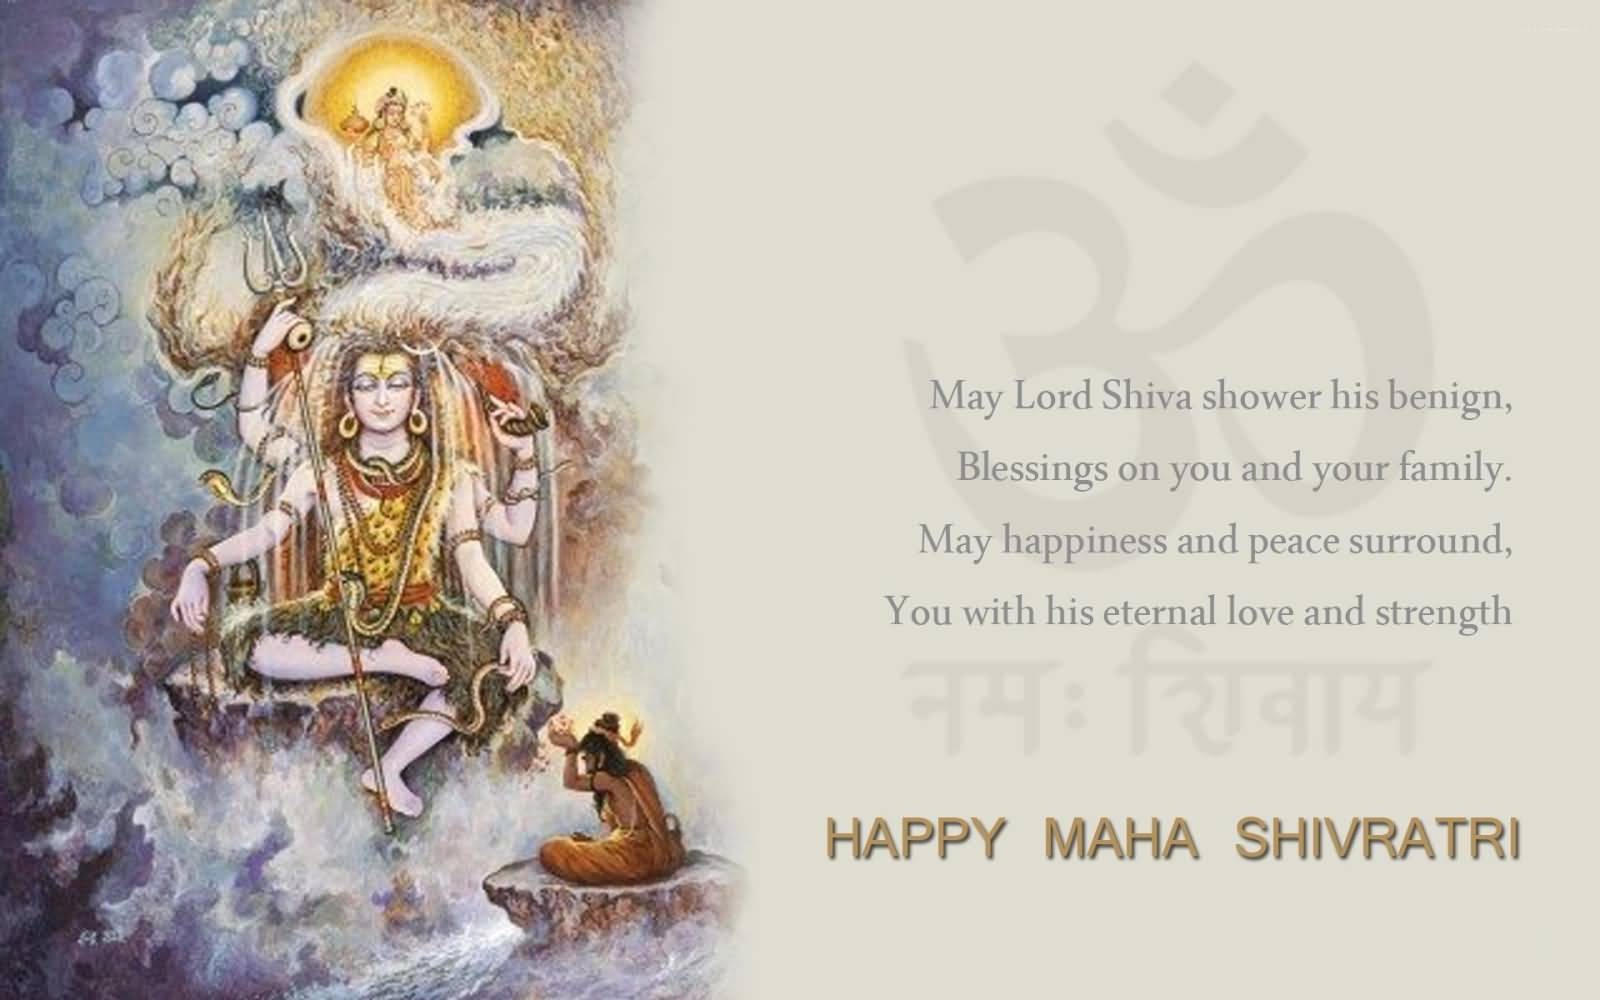 50 best happy maha shivaratri 2017 wish pictures may lord shiva shower his benign blessings on you and your family happy maha m4hsunfo